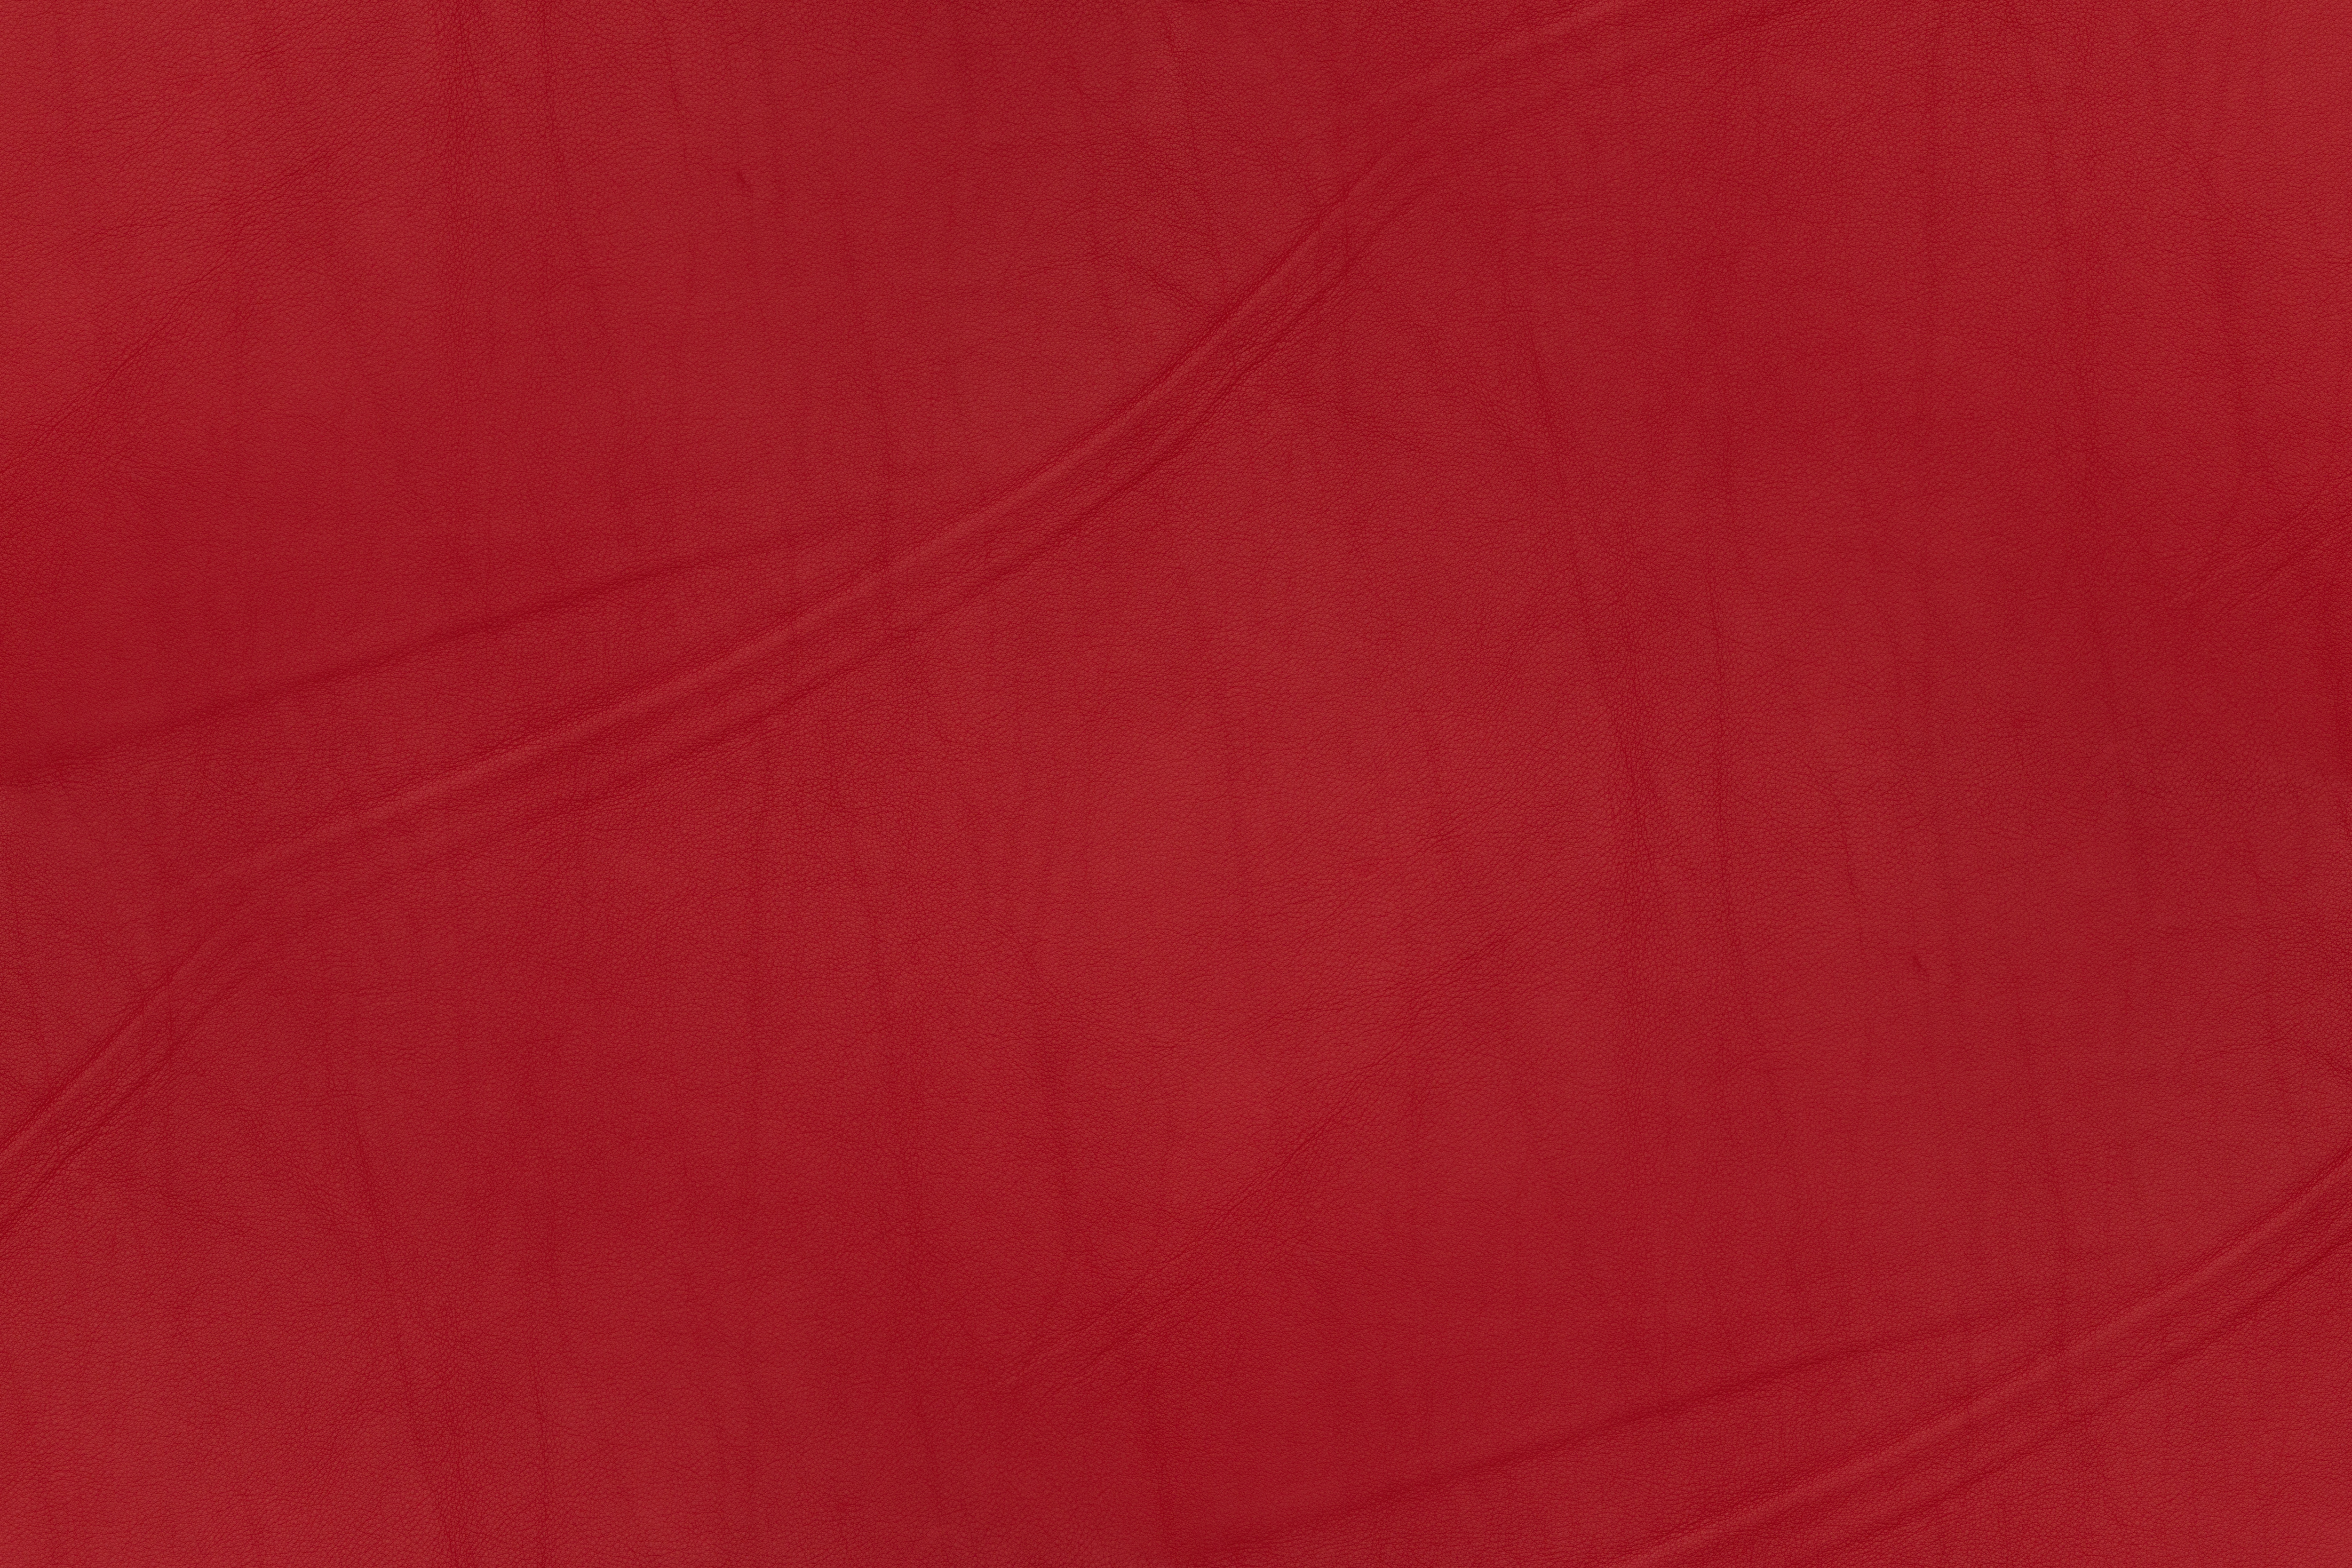 Red Texture Wallpapers Full Hd